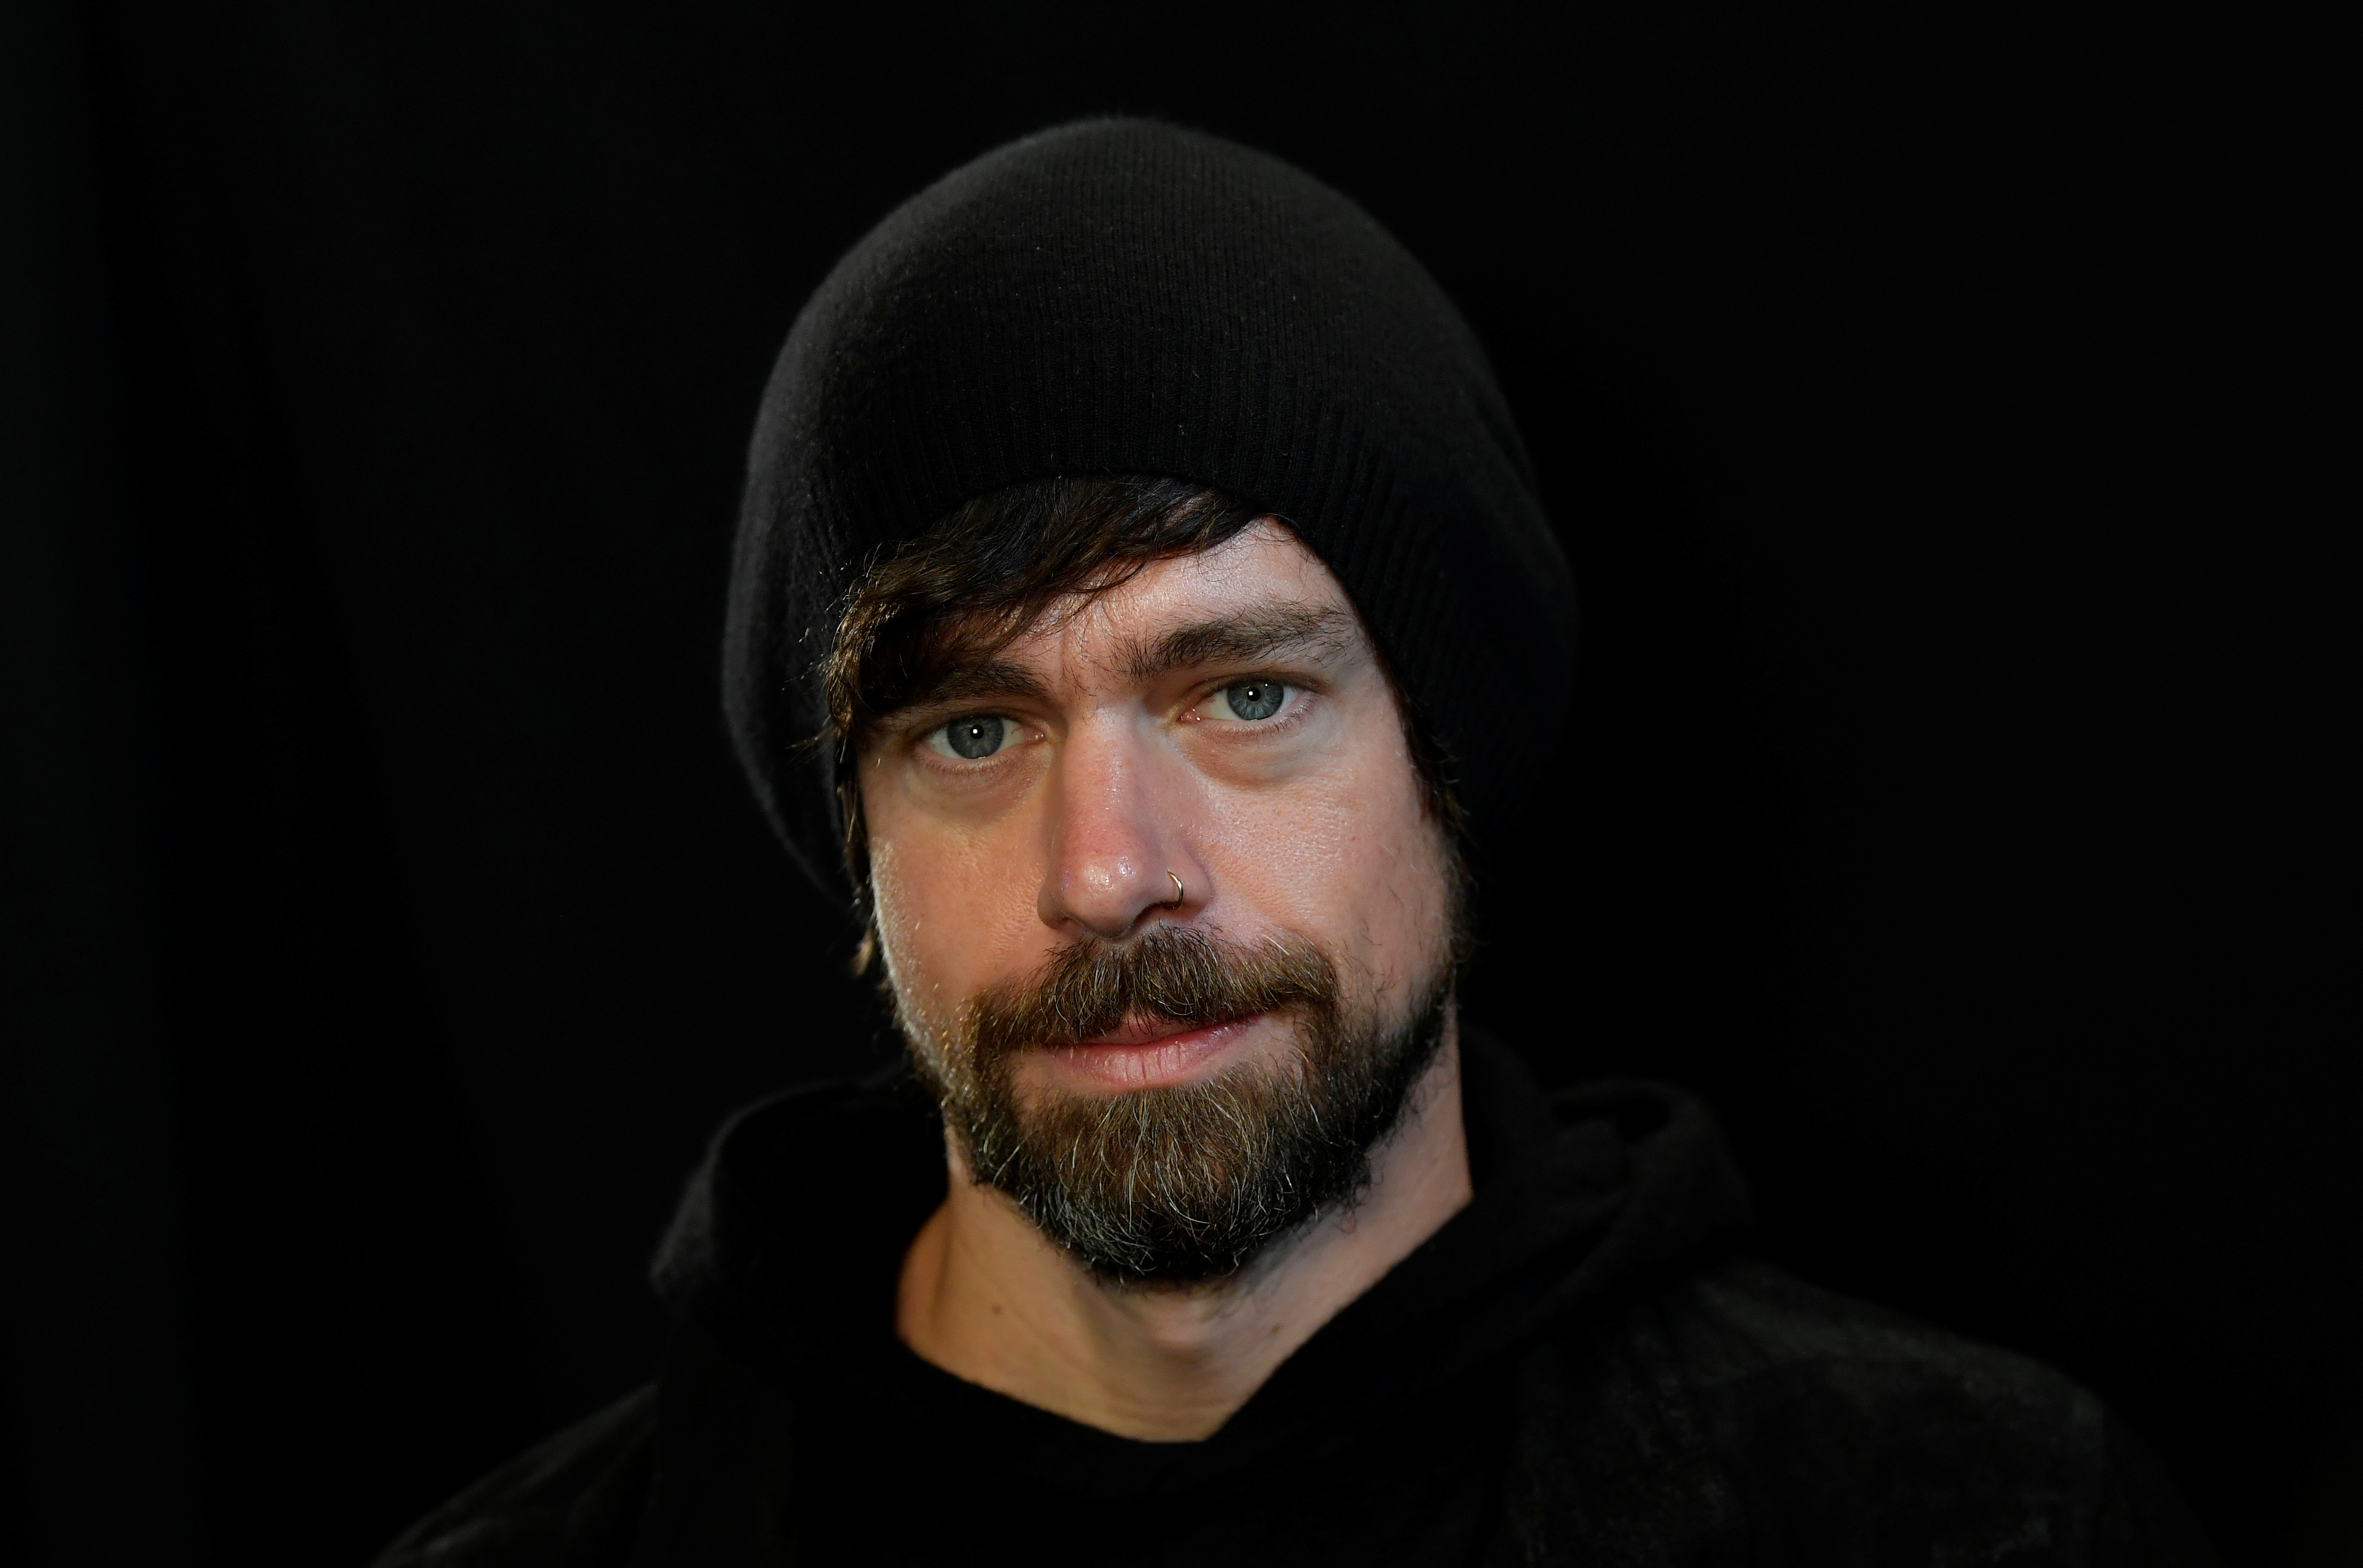 Jack Dorsey, co-founder of Twitter and fin-tech firm Square, sits for a portrait during an interview with Reuters in London, Britain, June 11, 2019. REUTERS/Toby Melville/Files